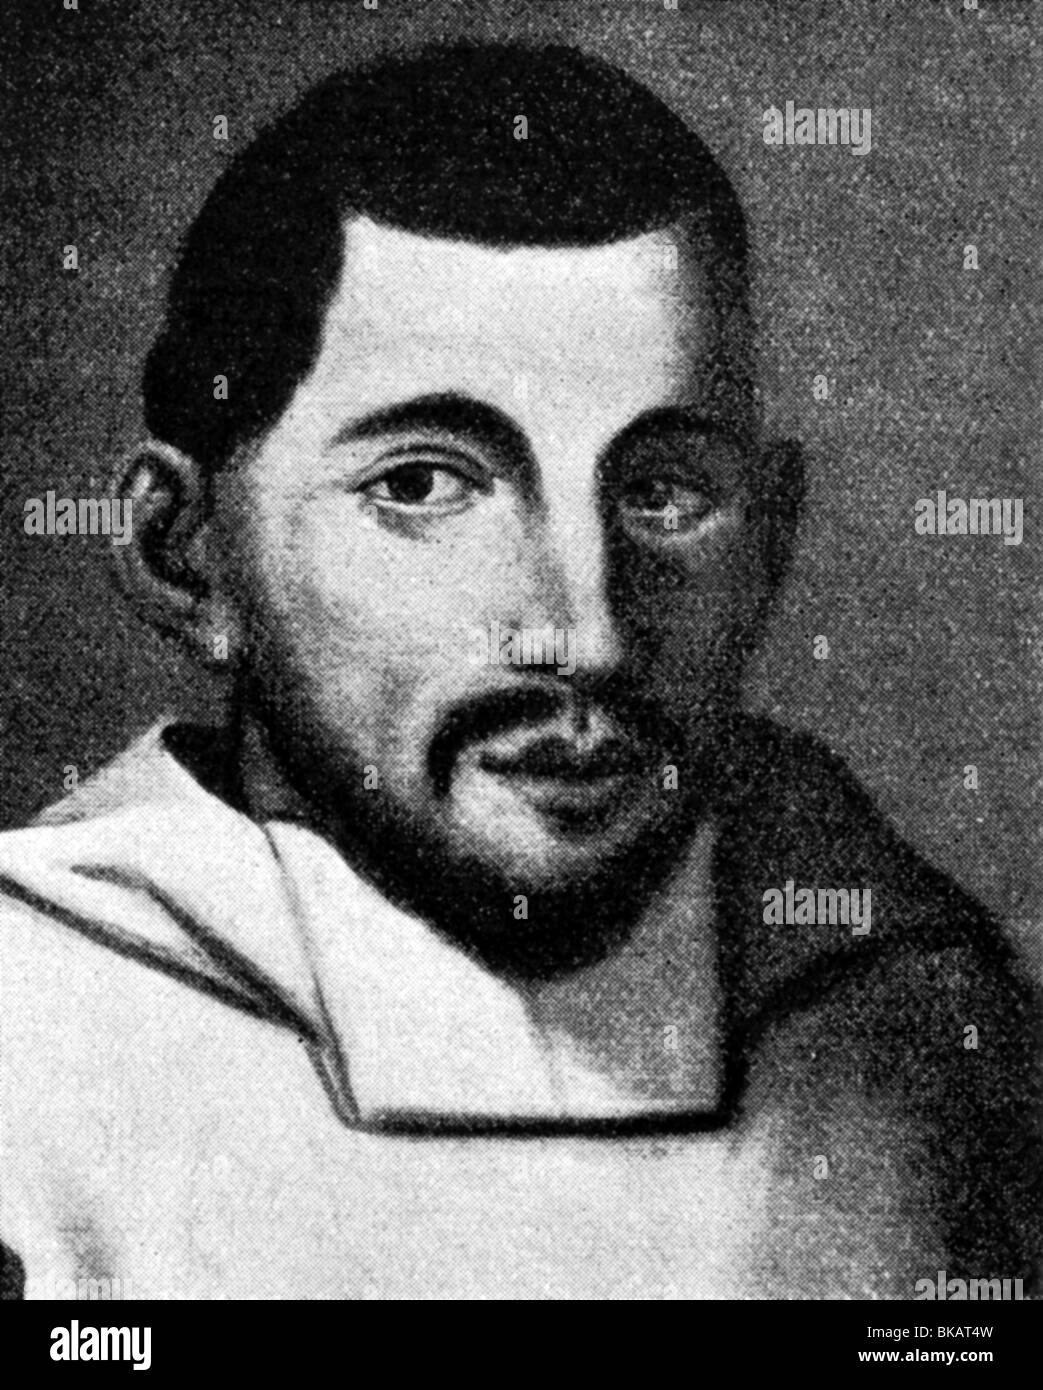 Banchieri, Adriano, 3.9.1568 - 1634, Italian musician (organist) and music theorist, portrait, after contemporary - Stock Image